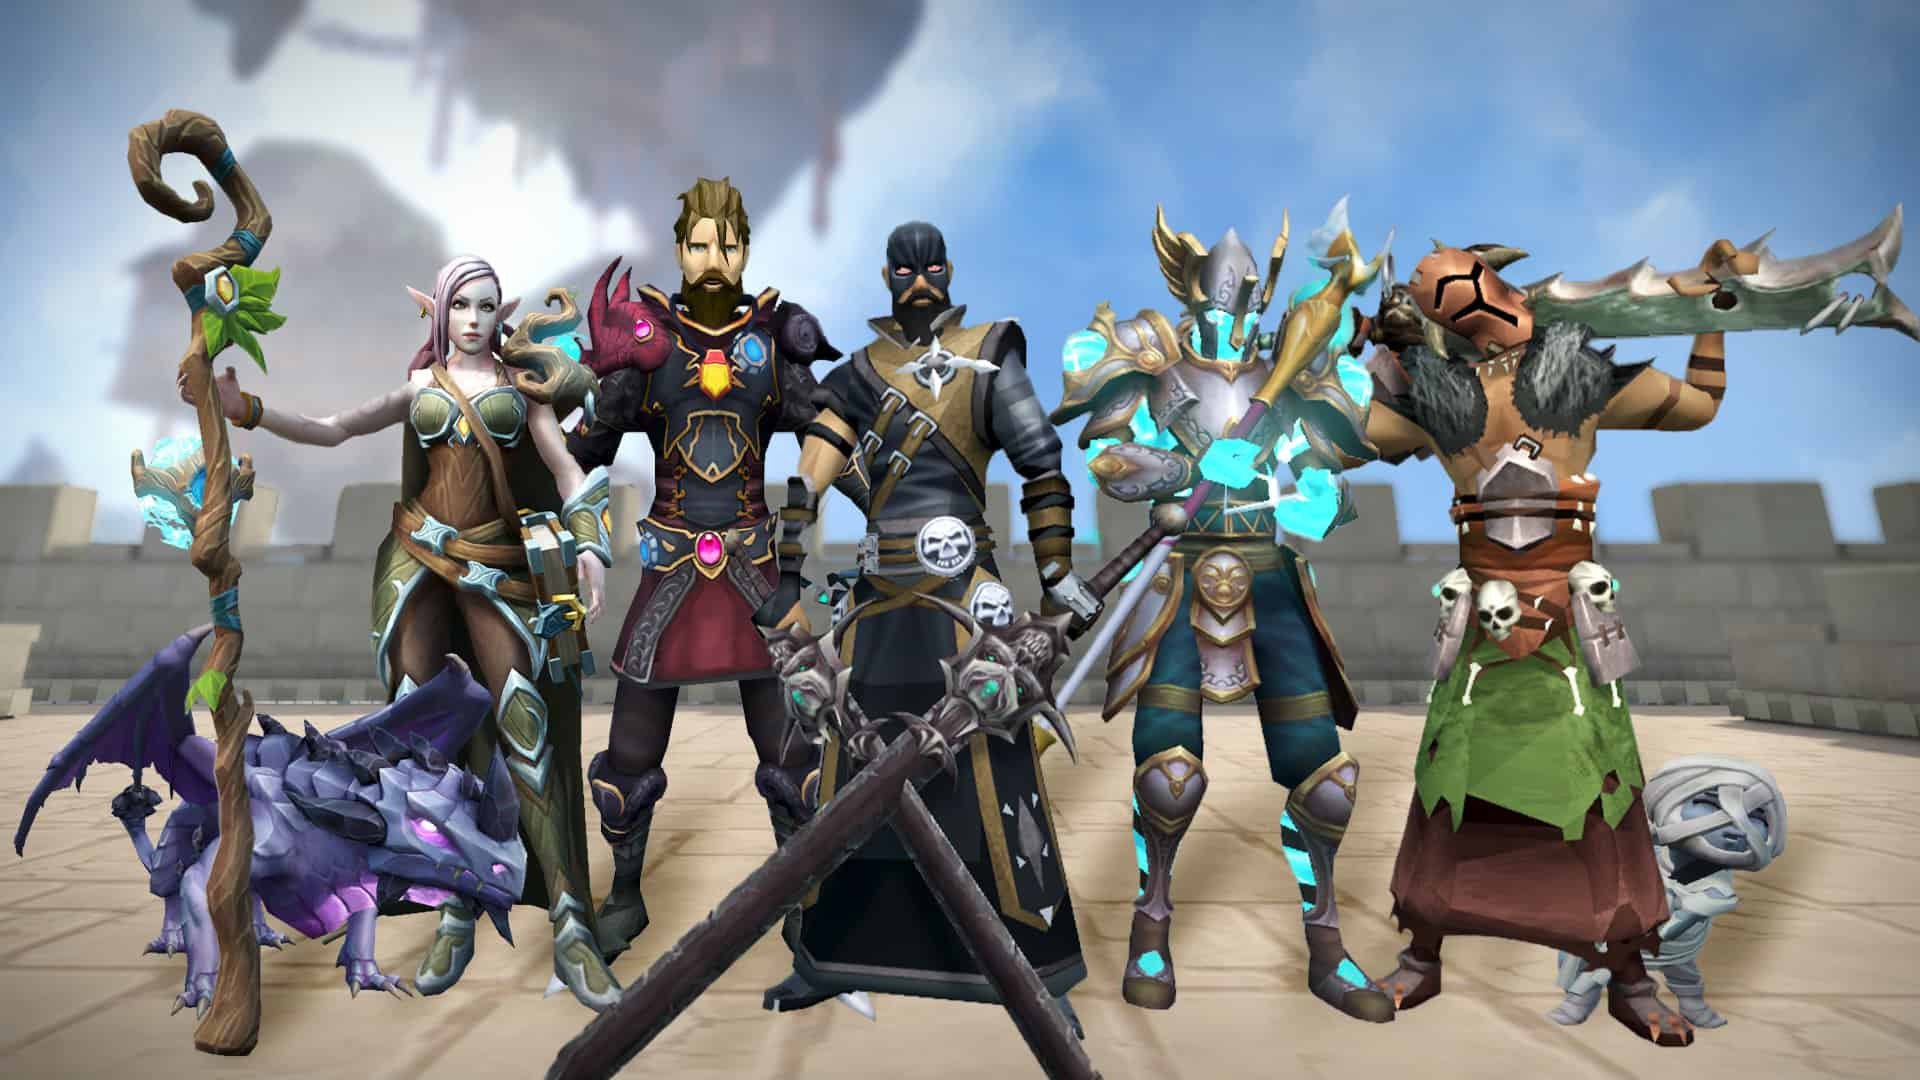 Runescape Delays Updates Again To Finish Restoring Accounts Affected By The Login Lockout 11